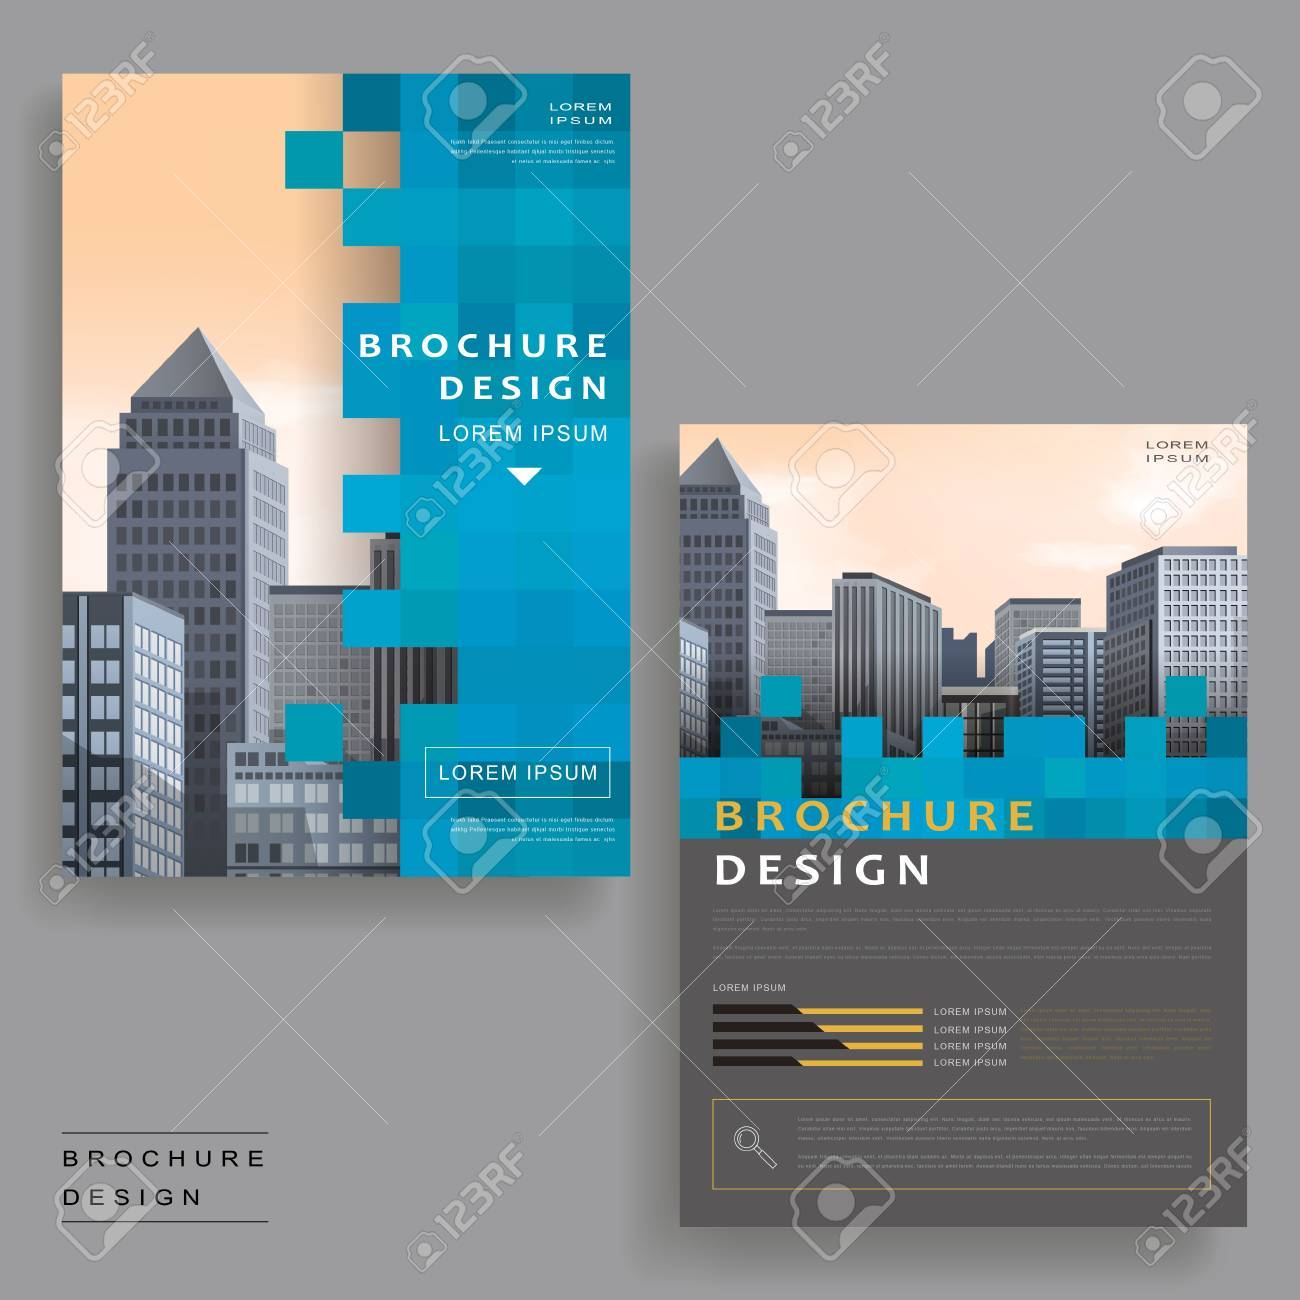 simplicity brochure template design with urban landscape and mosaic elements stock vector 61098559